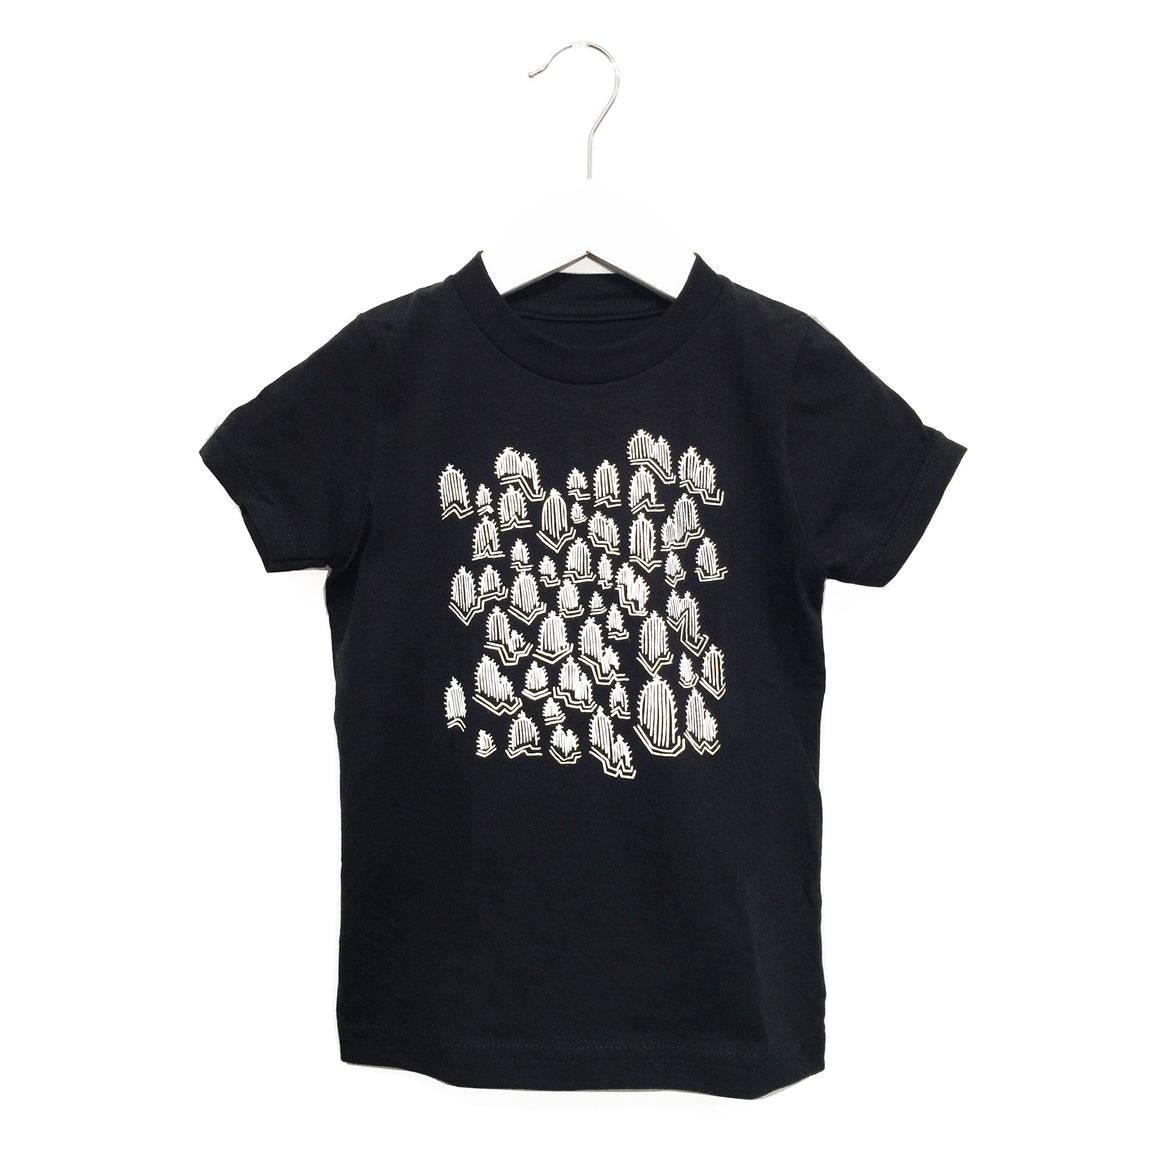 Kira x Coco, KID: Cactus Graphic T-shirt, Black